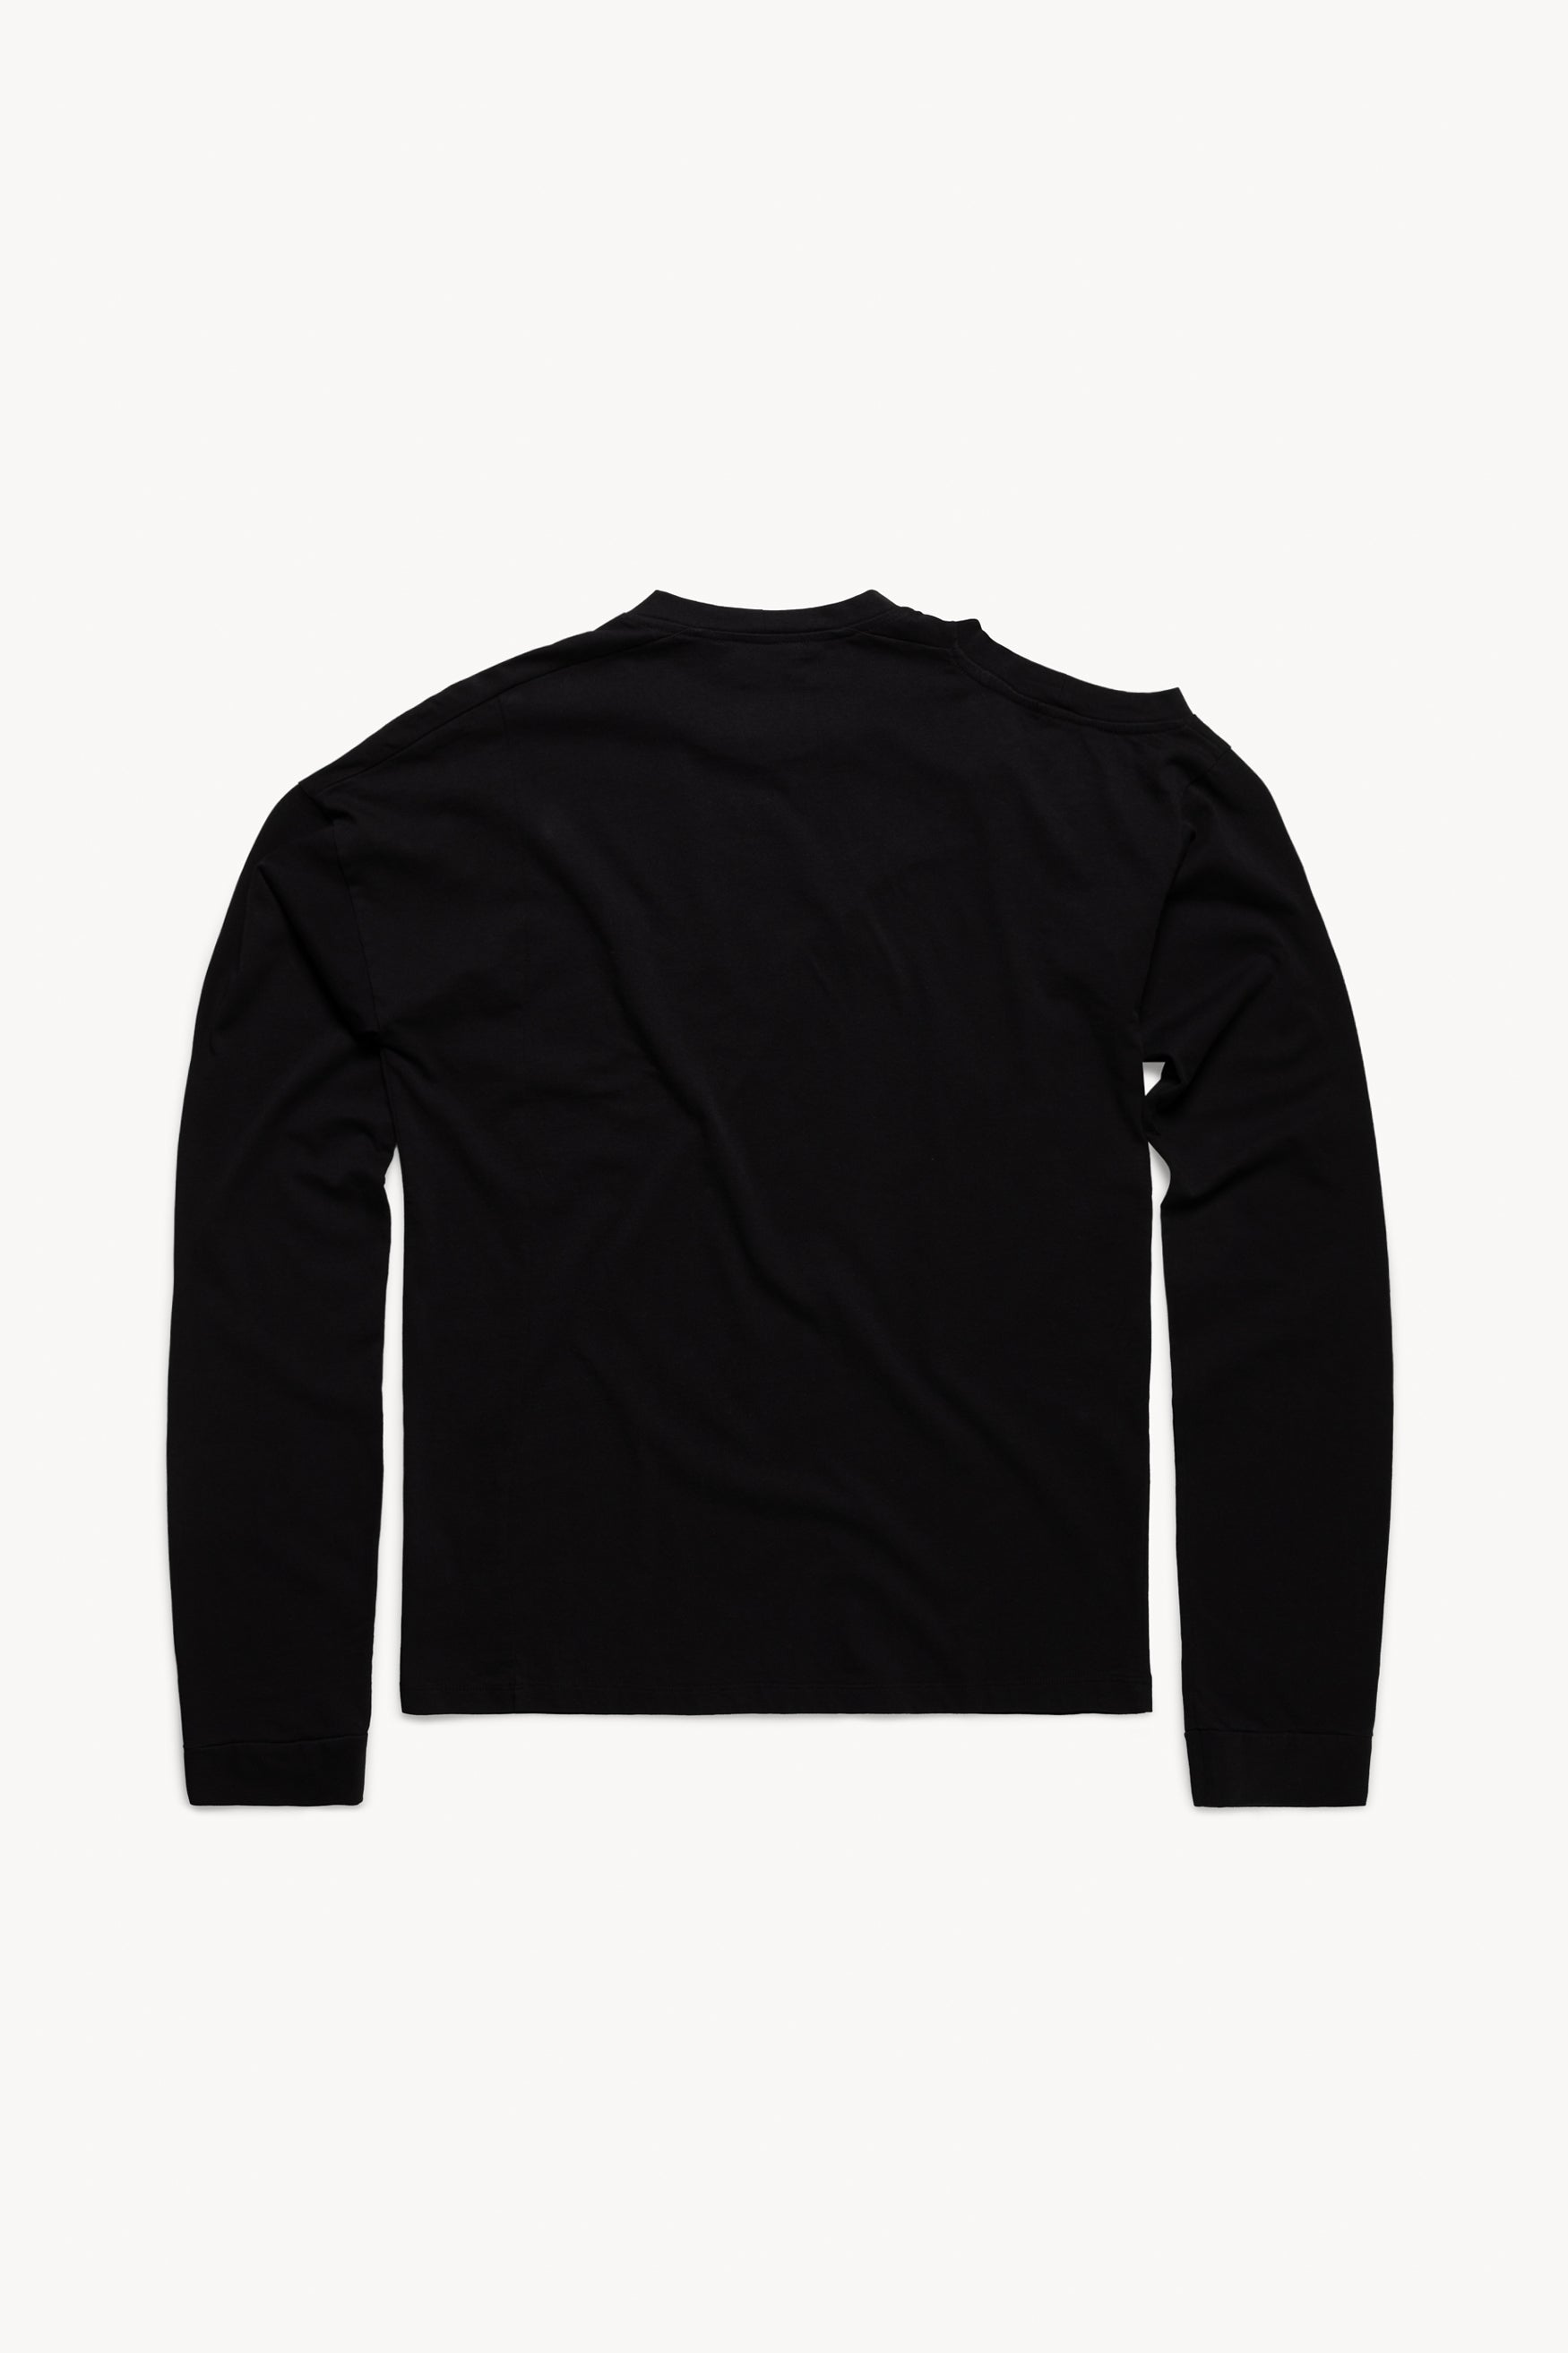 Load image into Gallery viewer, Shoulder Hole Super Long Sleeve Temple Tee